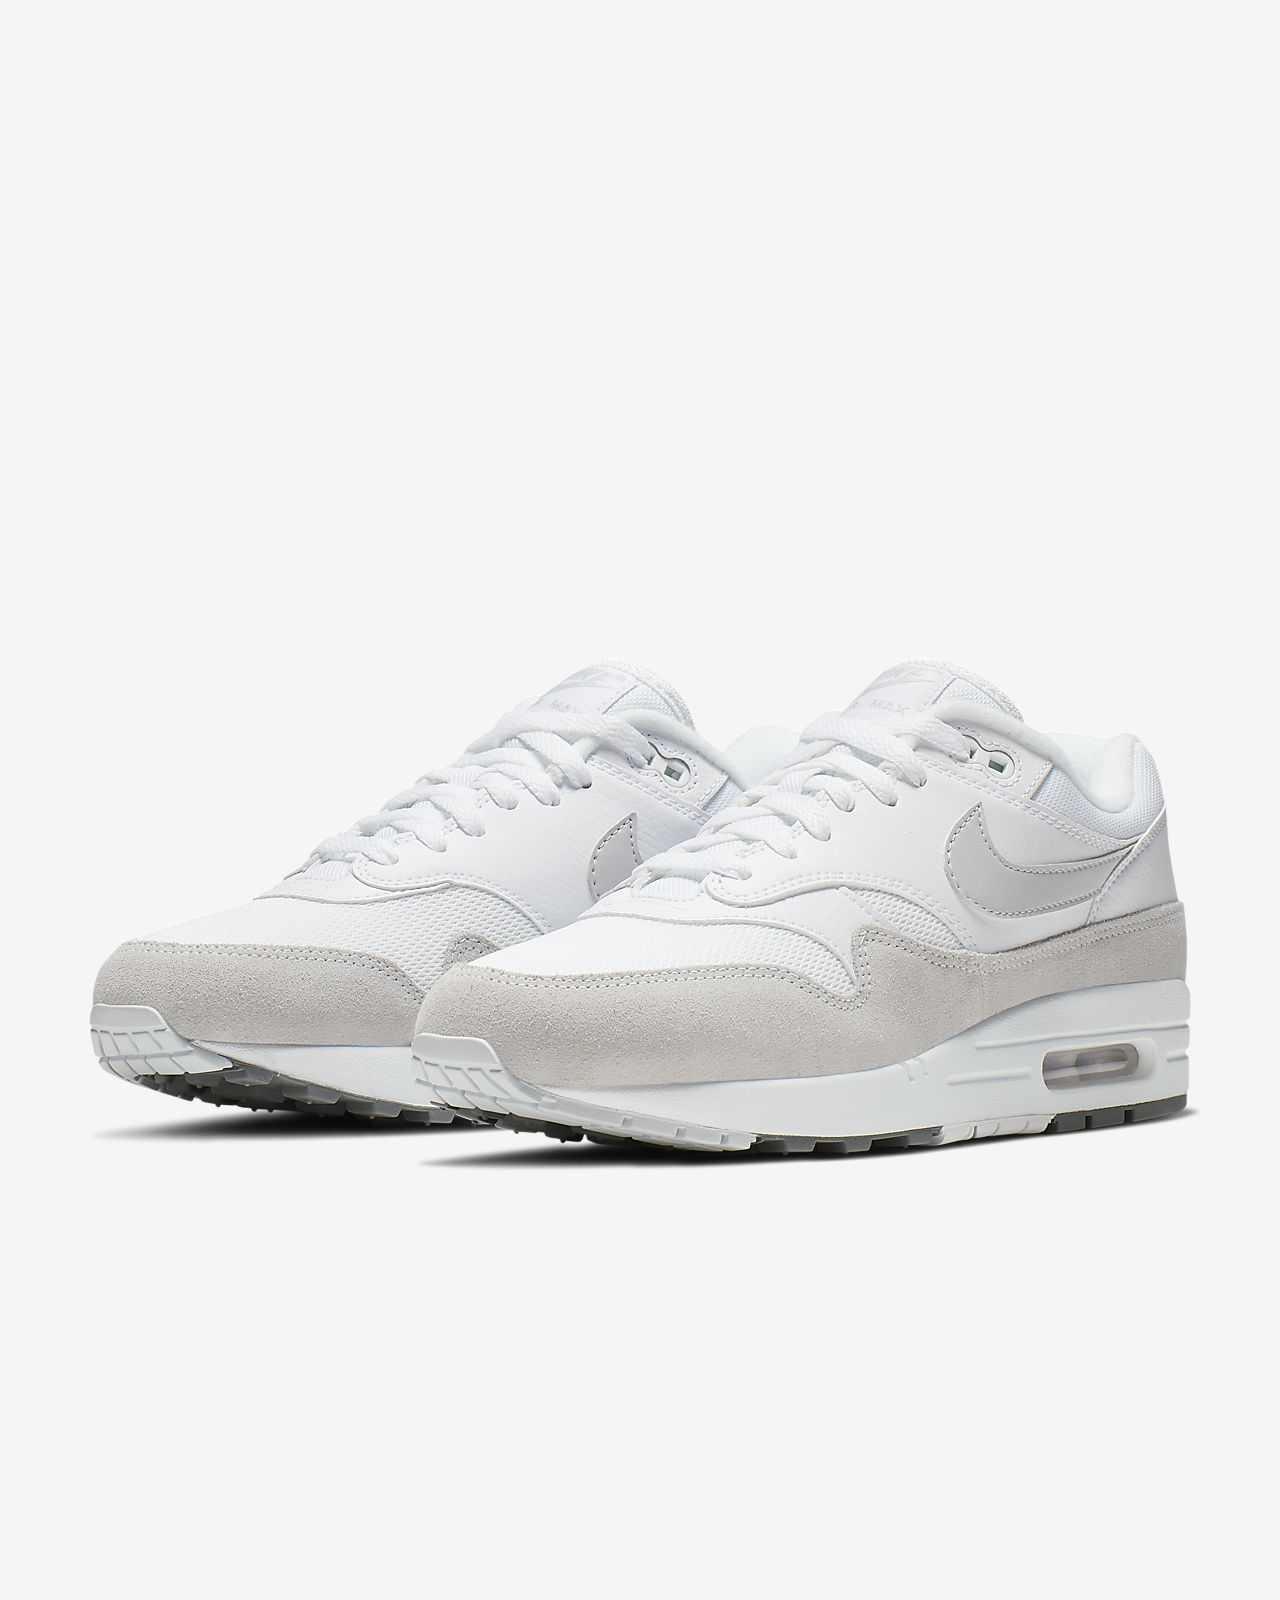 the best attitude 2c4c1 63281 Low Resolution Nike Air Max 1 Men s Shoe Nike Air Max 1 Men s Shoe